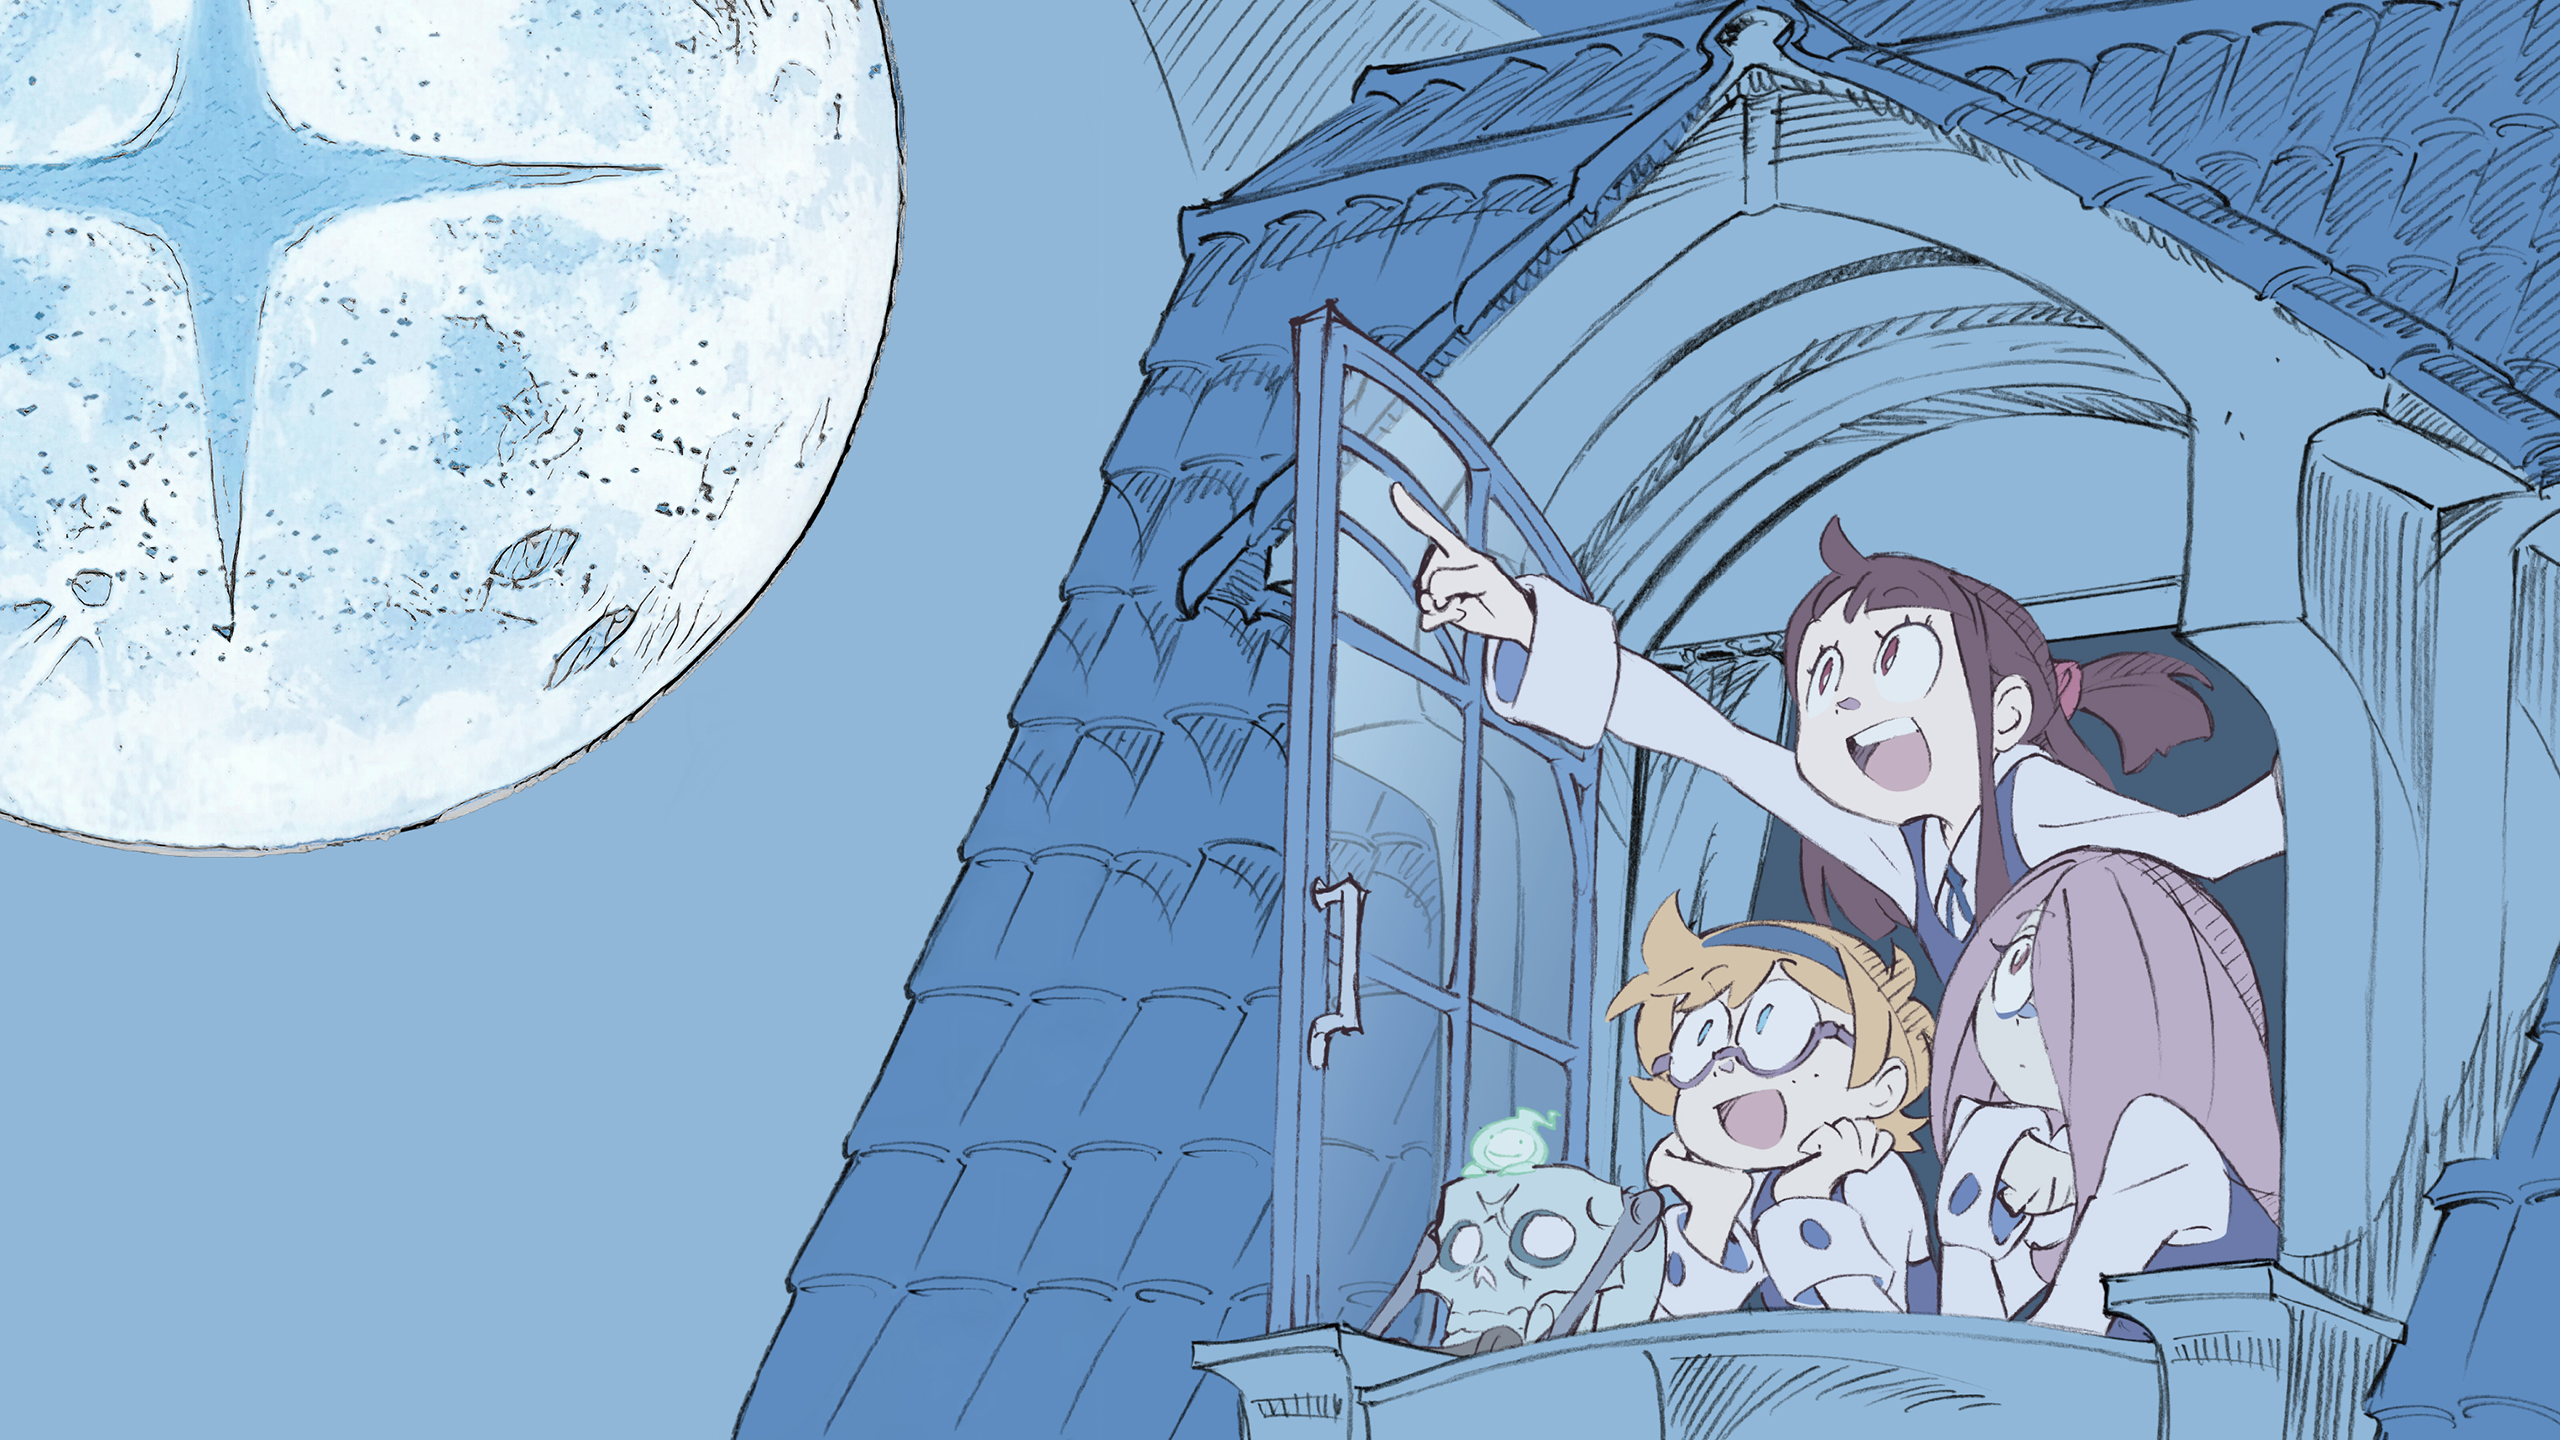 Night Observations (Little Witch Academia) [2560×1440] 4K